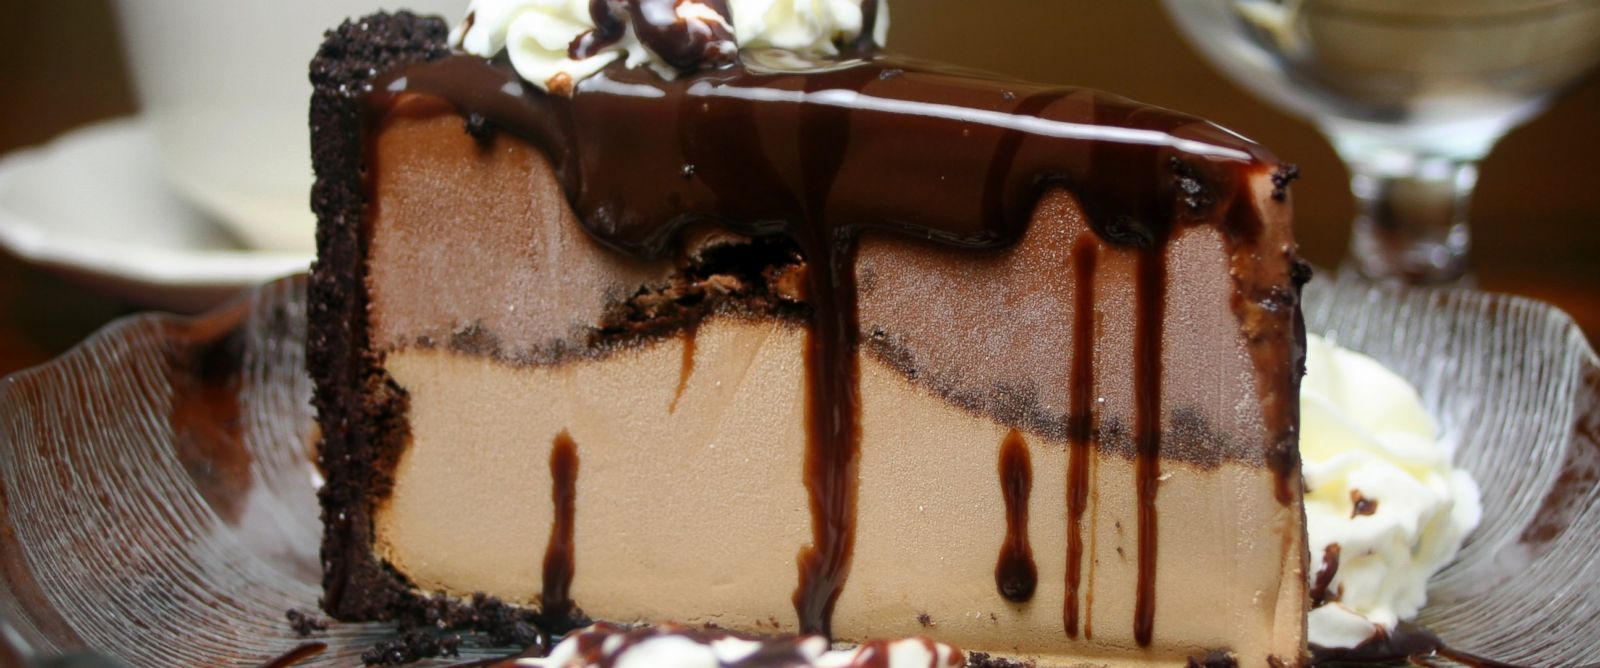 how to make ice cake at home